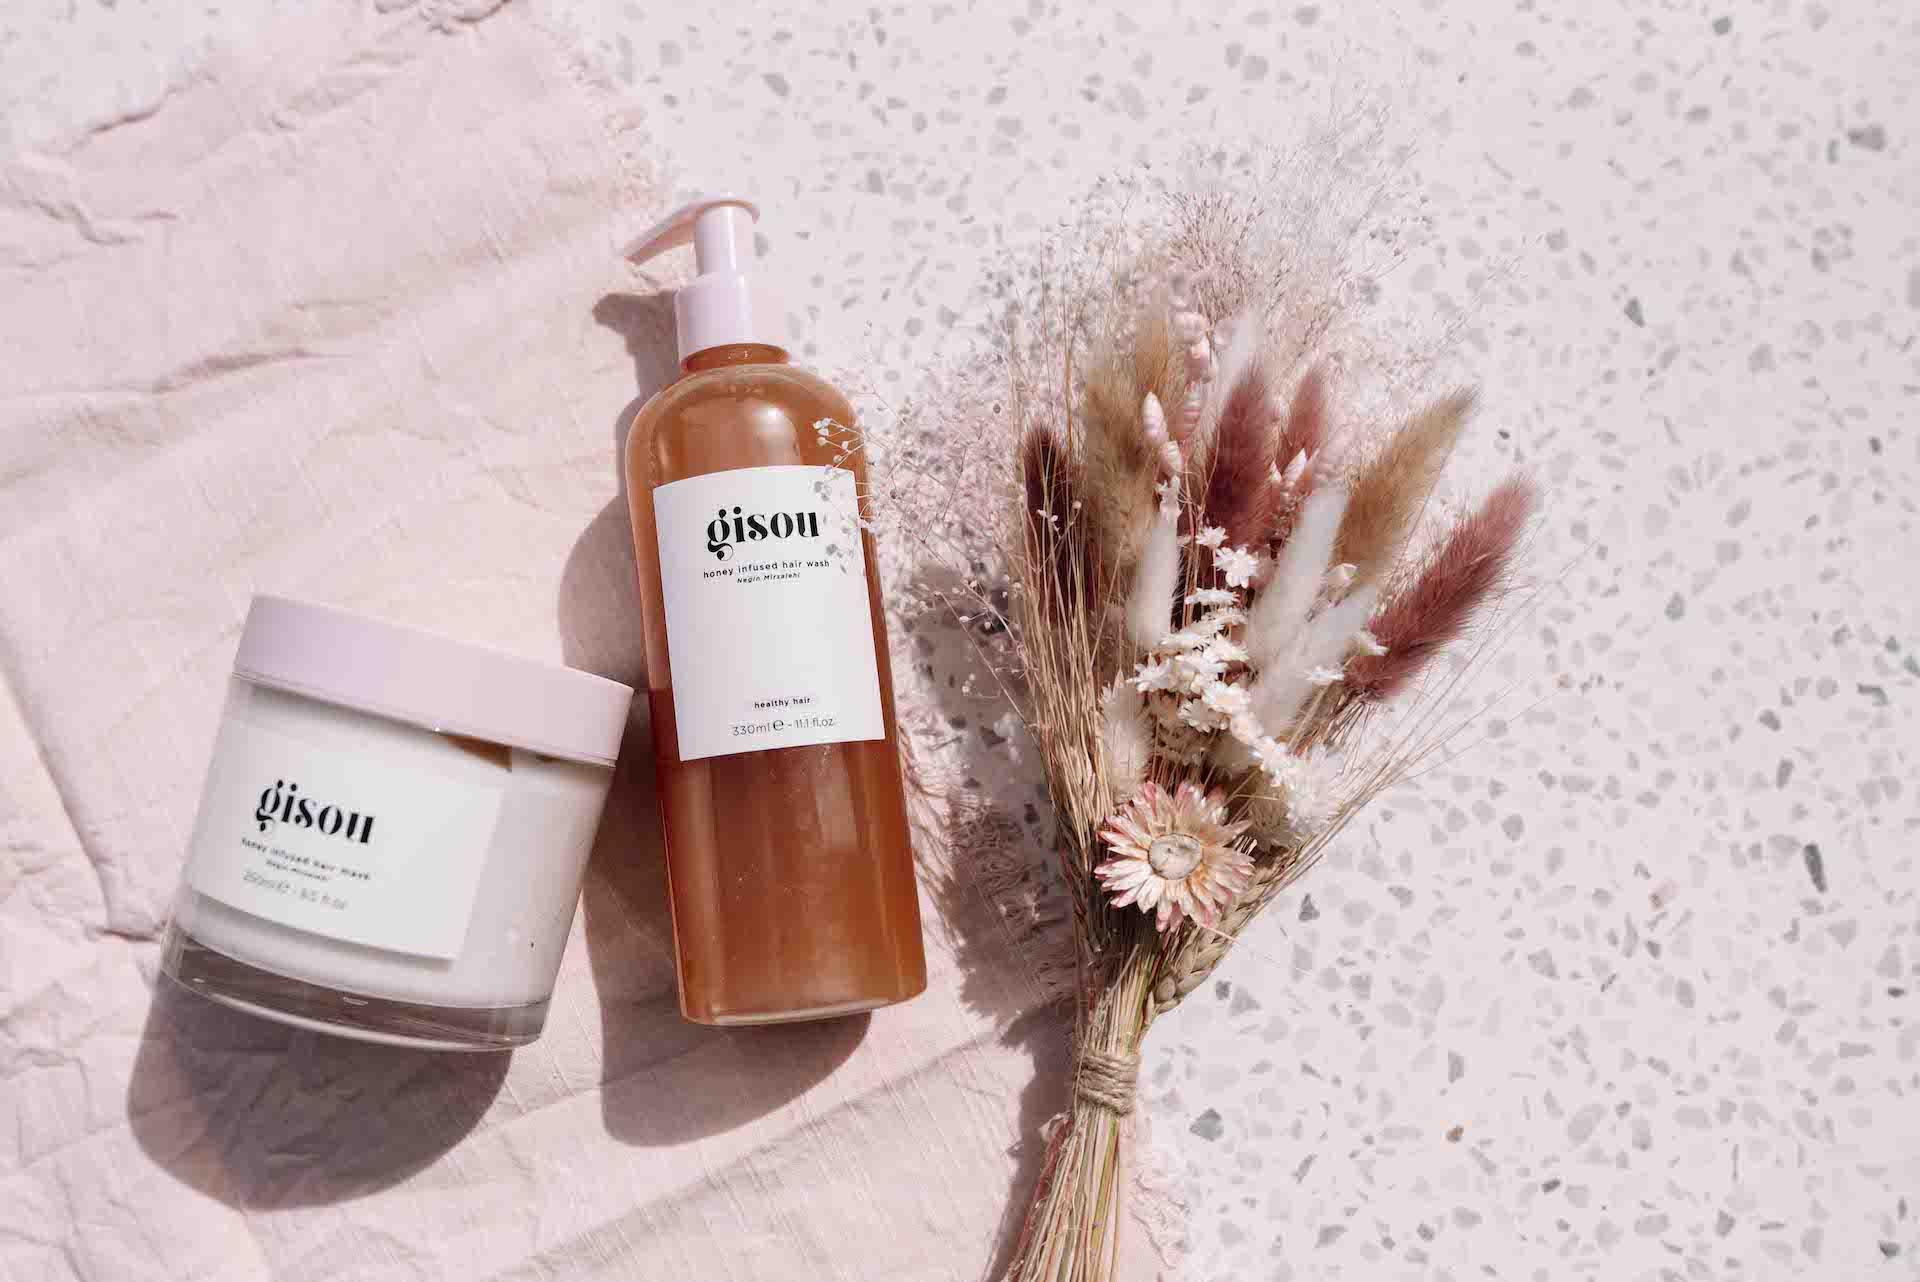 Gisou Hair Review - GLW; Click here to see the Gisou Hair review on Girls Living Well! Best gisou hair oil review with gisou hair oil results. gisou products packaging are super cute and stylish on the counter in the bathroom. This is a review of the gisou hair perfume, as well as the gisou honey infused hair mask. These are truly the ultimate and absolute best natural haircare products. Hair products for curly hair. Hair products for fine hair.